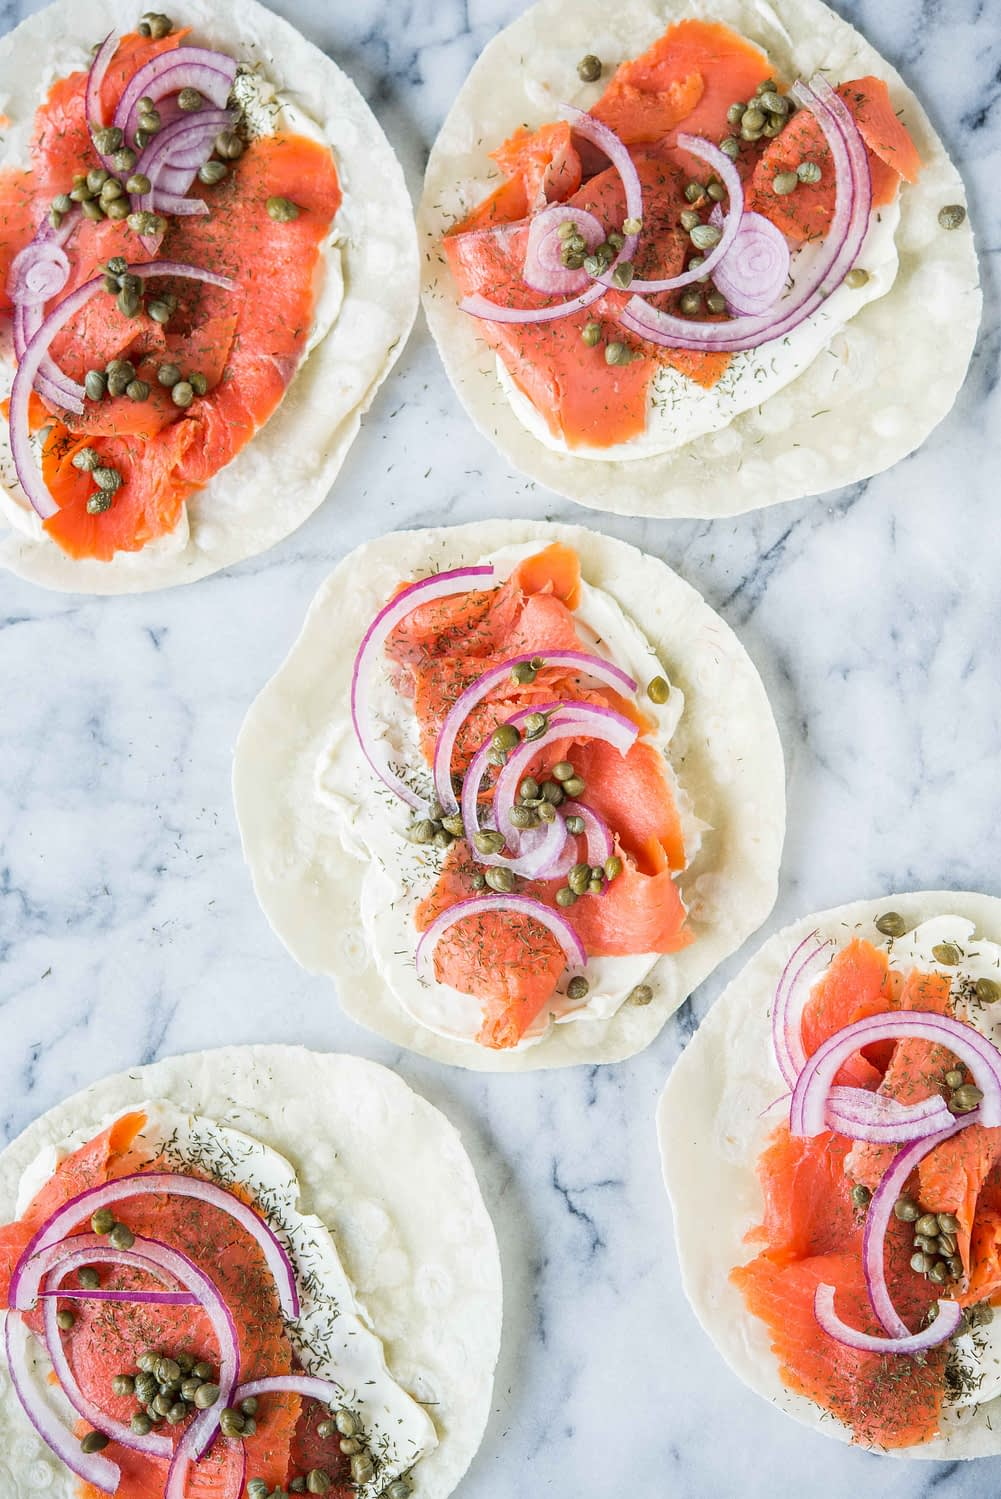 tortillas smeared with cream cheese, smoked salmon, capers, and red onion, on a marble board